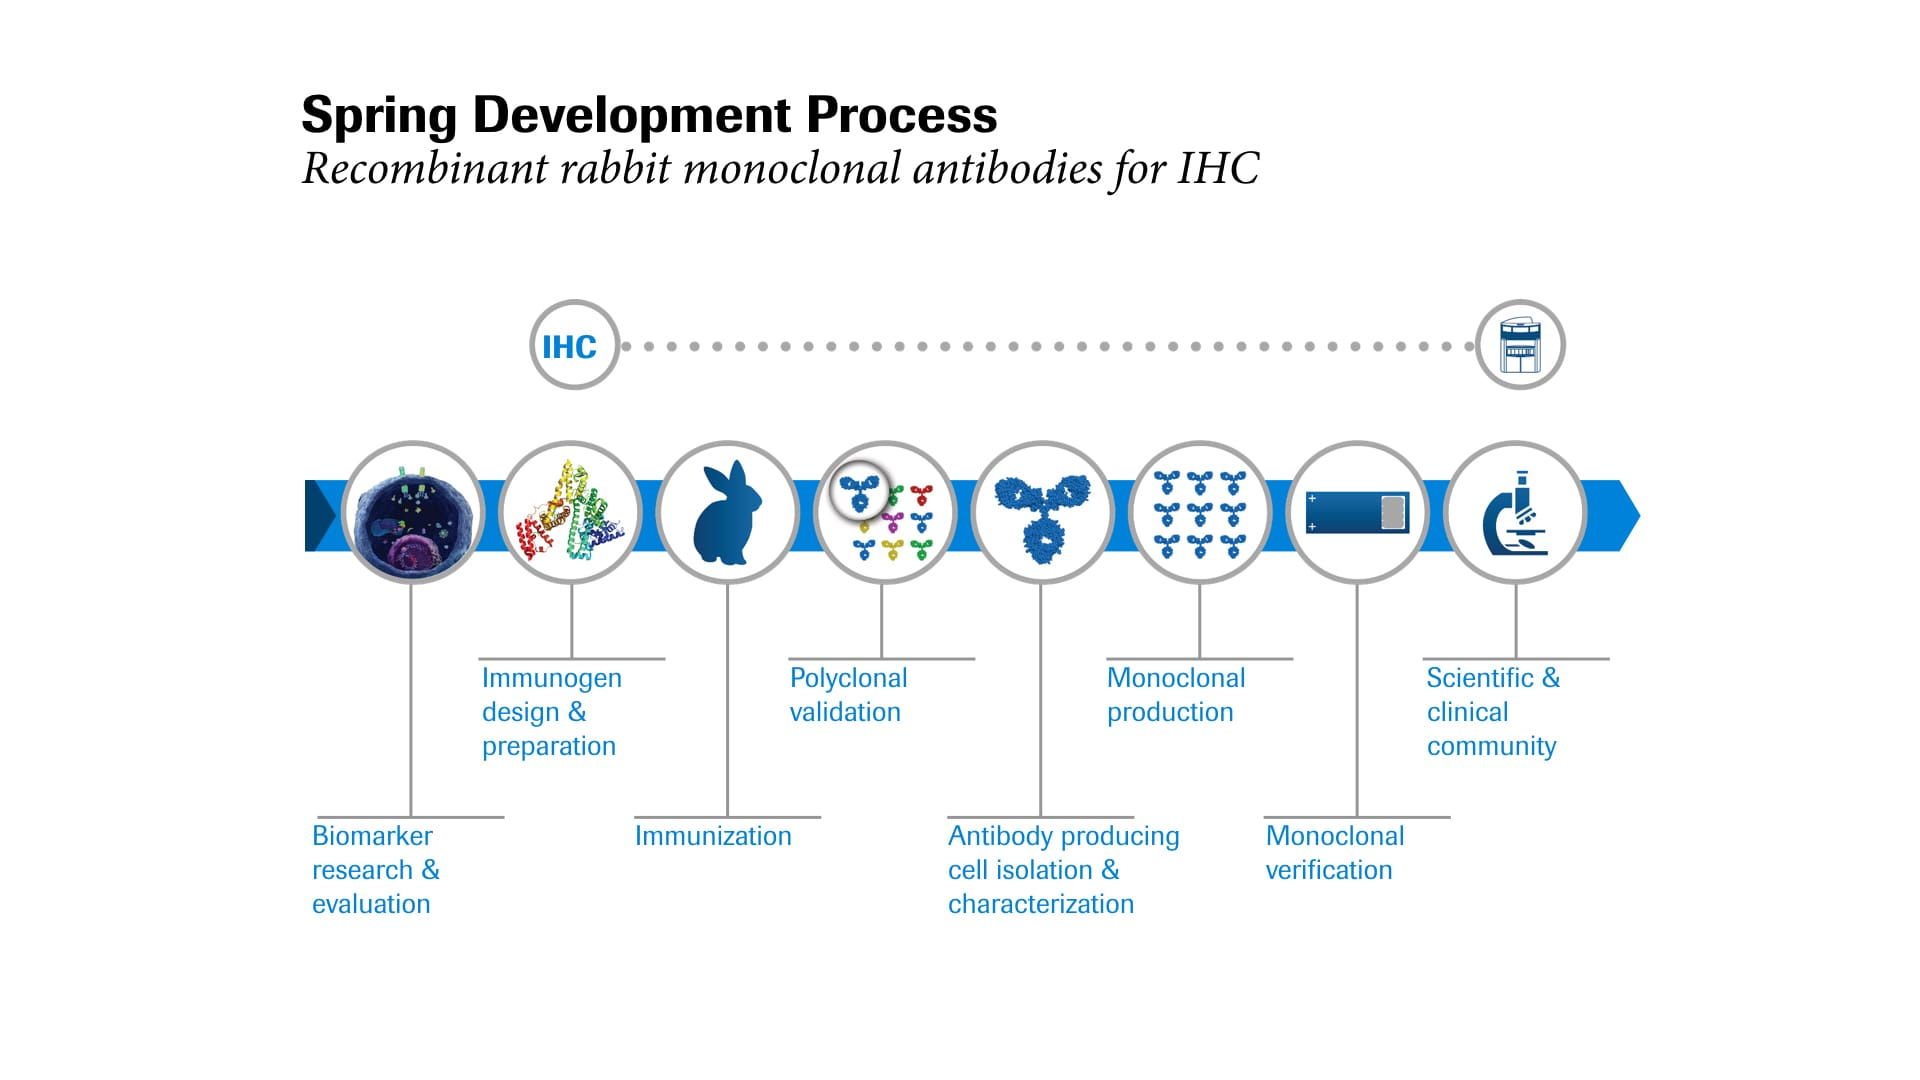 Spring Bioscience Development Process